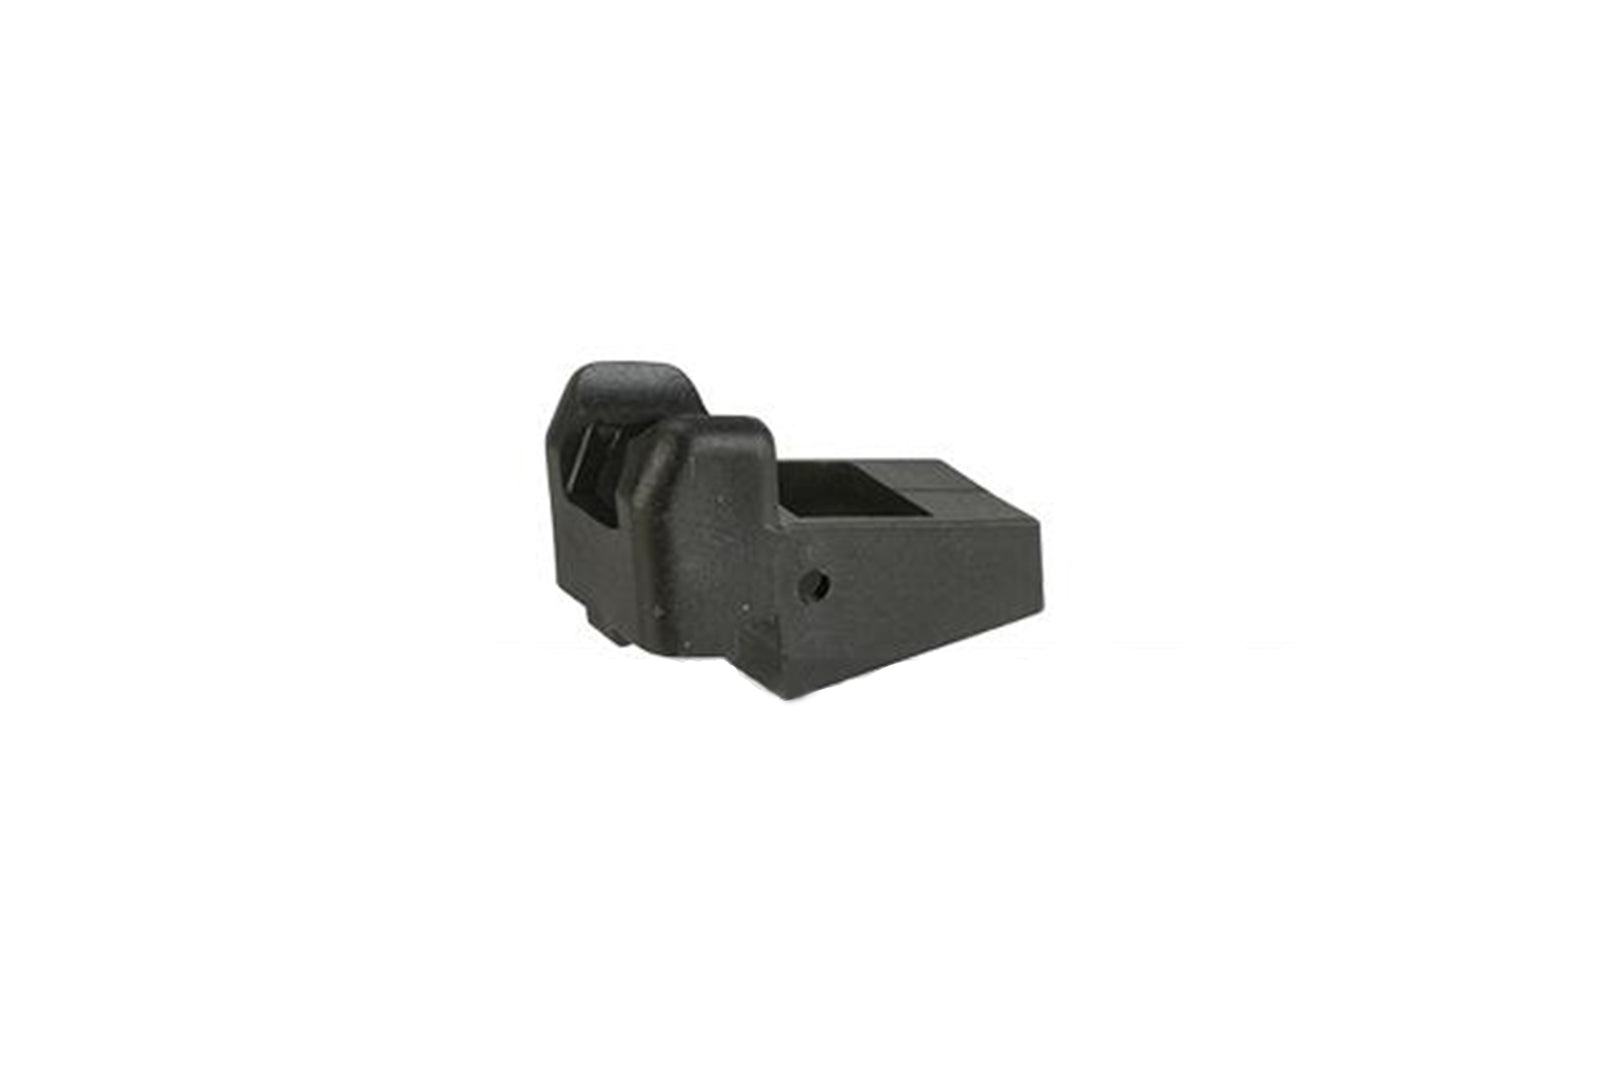 KJW Magazine Lip For Hi-Capa Series Gas Blowback Airsoft Pistols